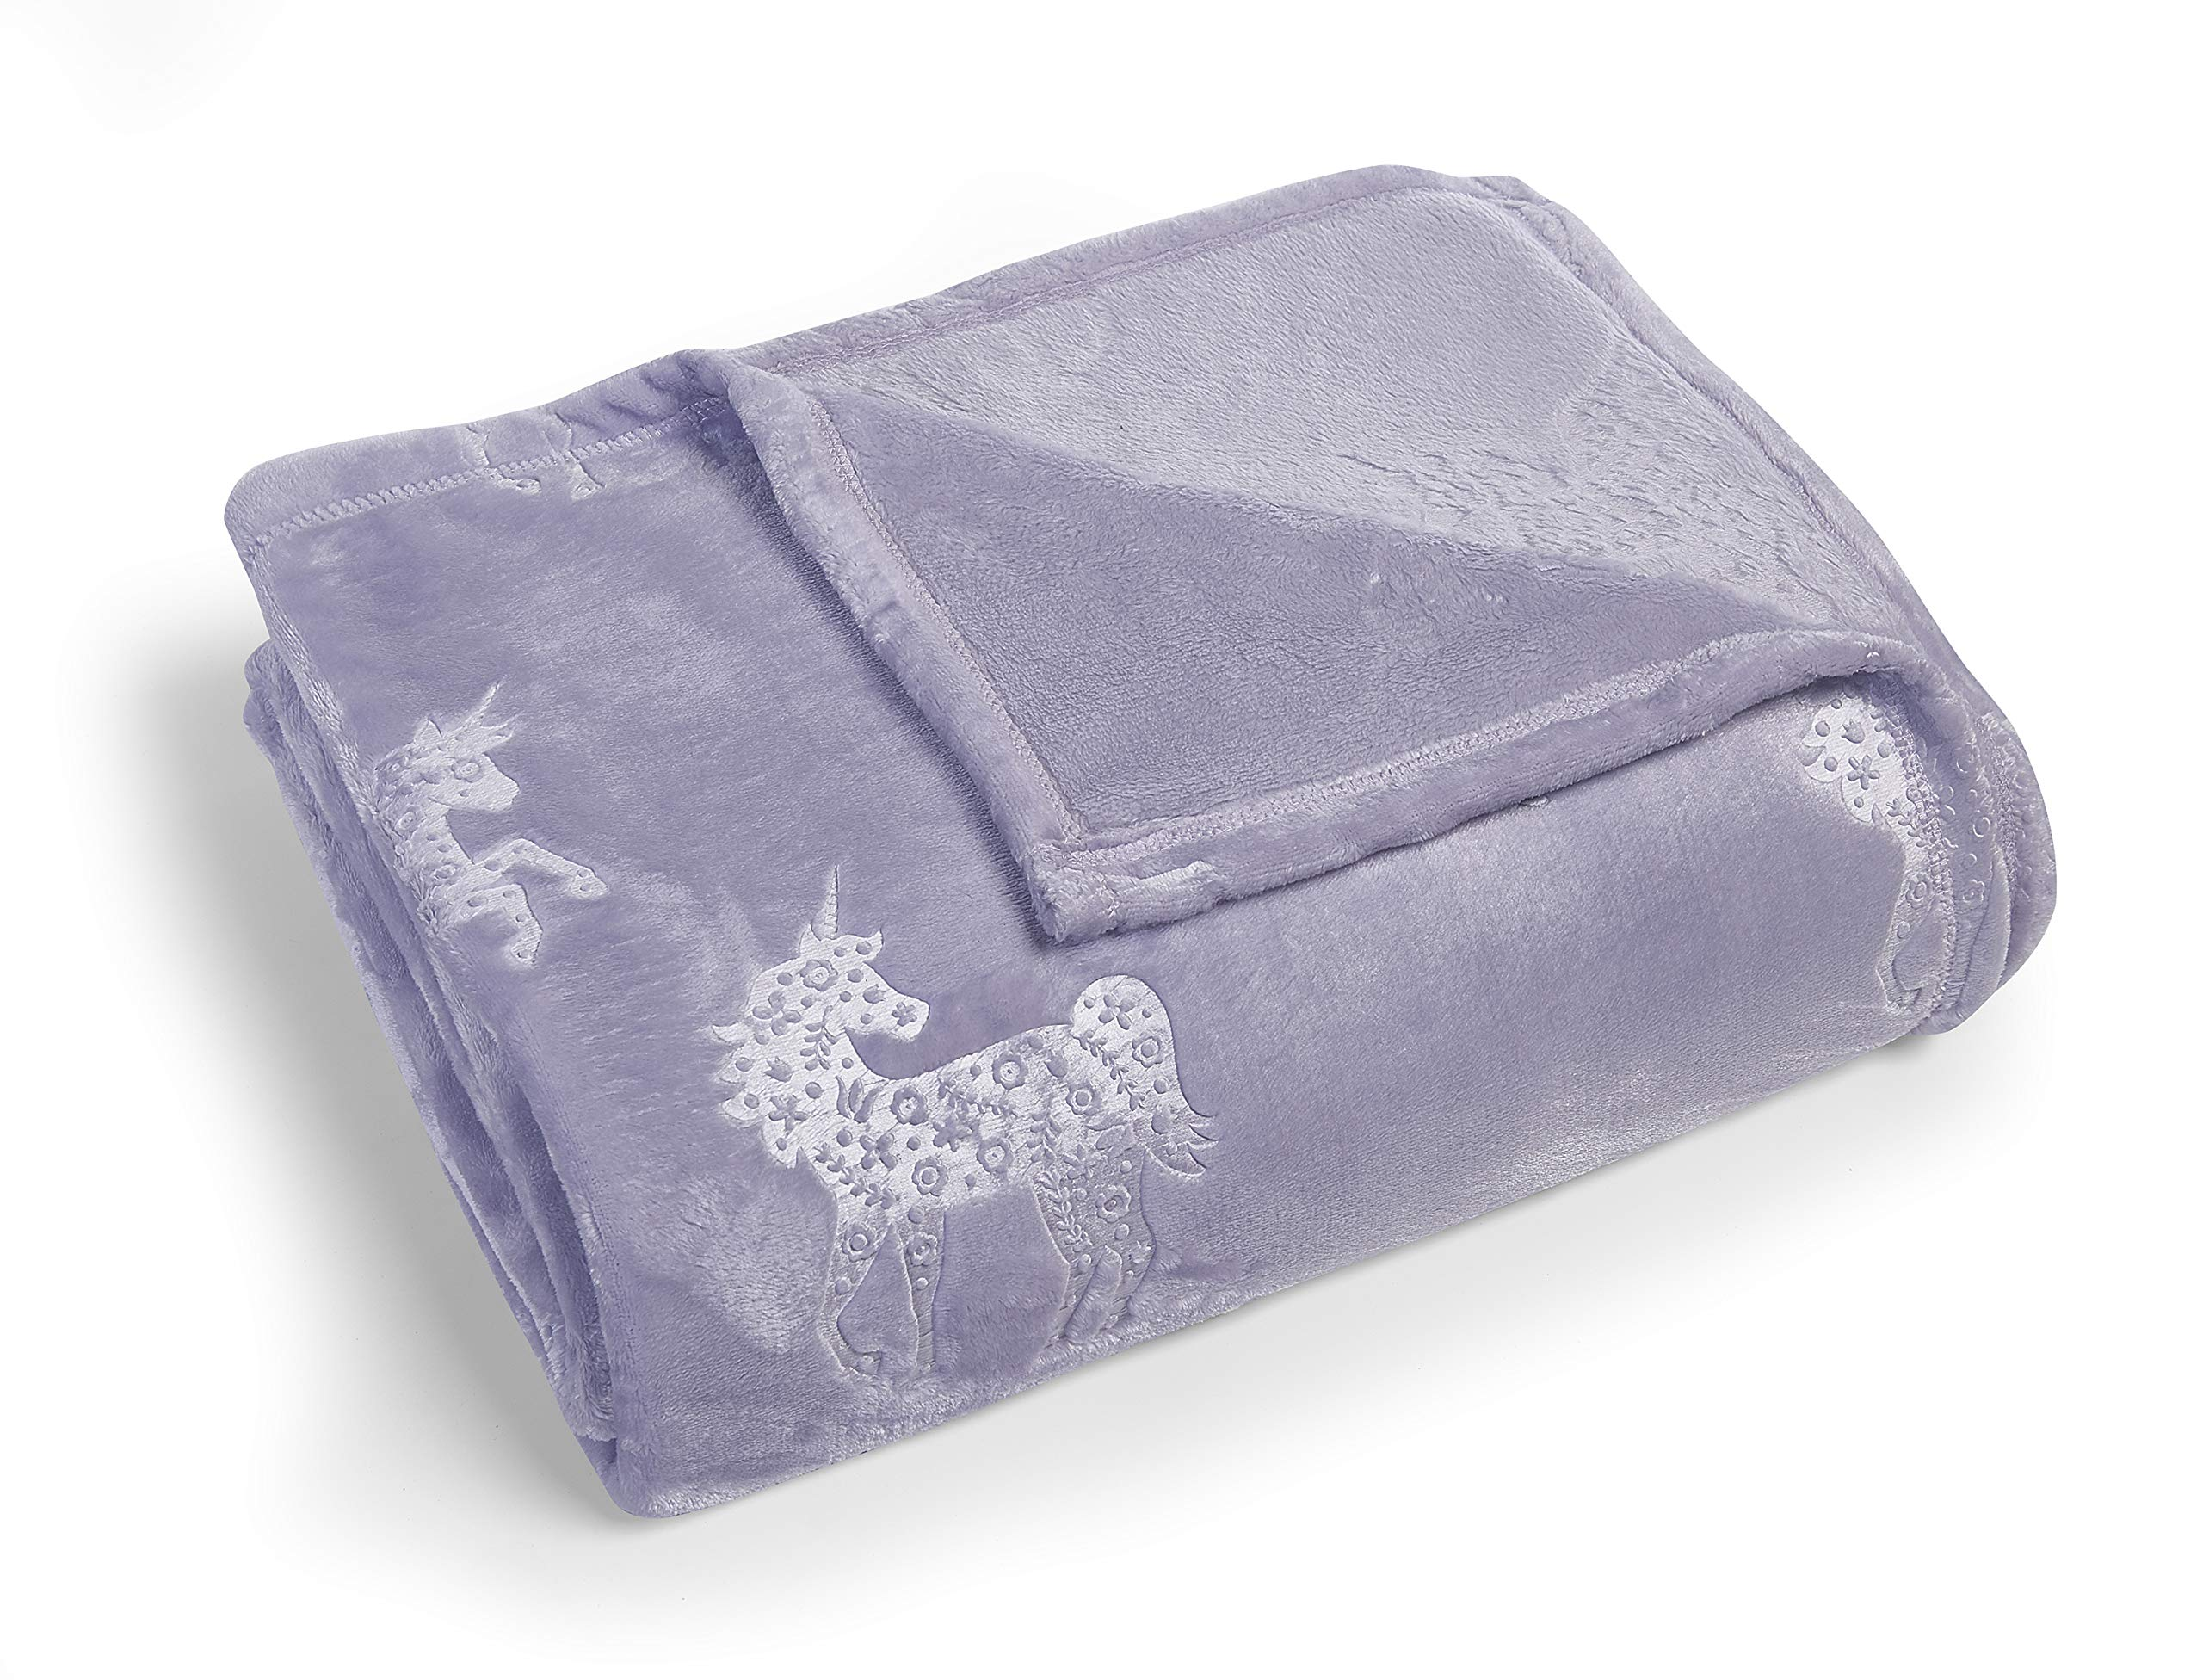 Kute Kids Embossed Velvet Plush Girls Twin Blanket - Available in Mermaid Cats and Unicorn Designs, Colors Include Pink, Aqua, Purple and Grey - Super Soft and Ultra Cozy (Purple Unicorn)